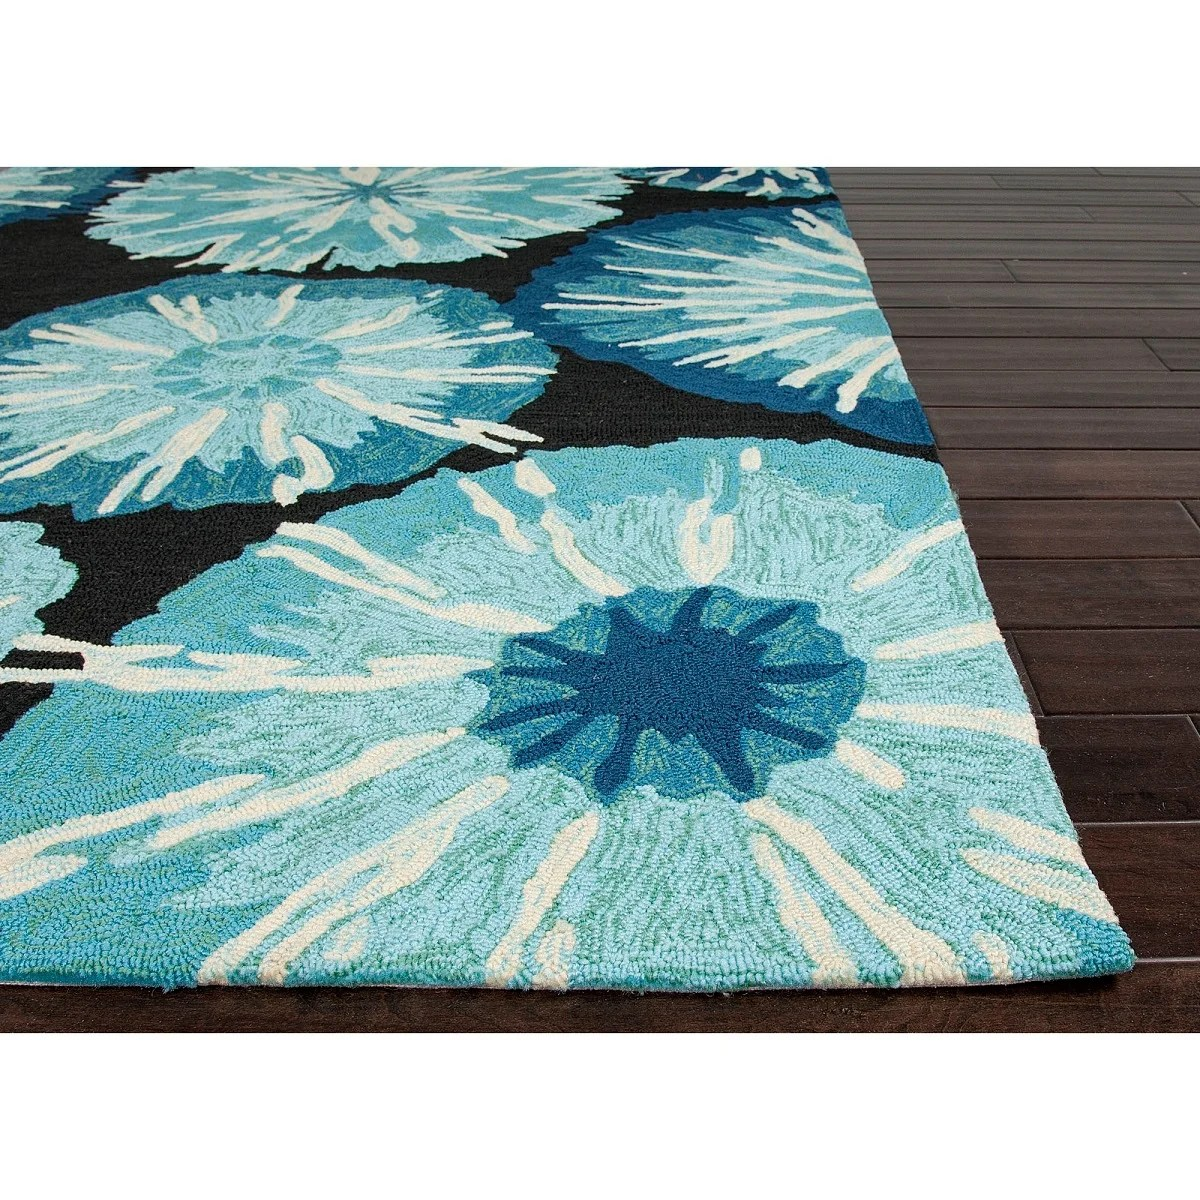 Shop 2 X 3 Baby Blue Cobalt Blue Black And White Starburst Design Outdoor Area Throw Rug 2 Footx3 Foot Free Shipping Today Overstock 16671045